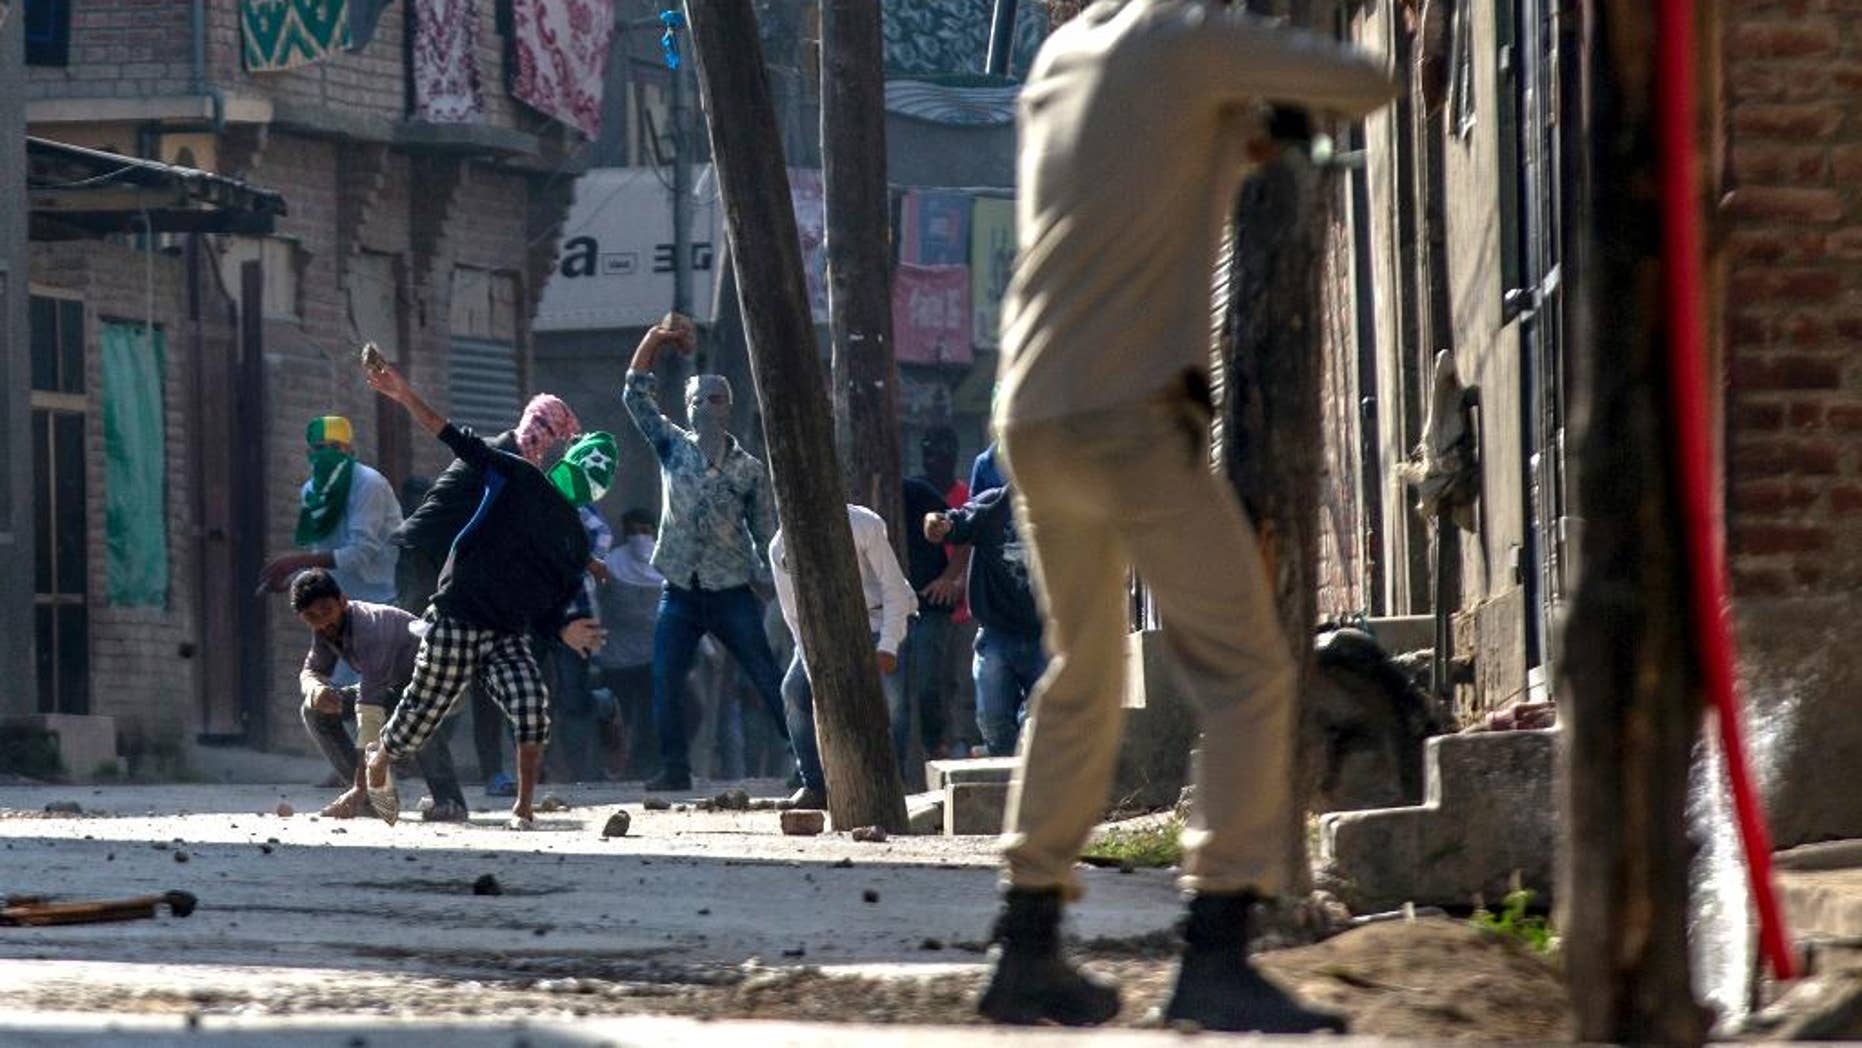 Kashmiri protesters throw stones and bricks at an Indian policeman as he prepares to fire pallet gun during a protest in Srinagar, Indian controlled Kashmir, Friday, Oct. 7, 2016. Authorities imposed a curfew in many parts of the Indian-controlled Kashmir to prevent a protest march to the disputed Himalayan region's office of United Nations Military Observer Group in India and Pakistan (UNMOGIP) called by separatist leaders seeking end of Indian rule. (AP Photo/Dar Yasin)